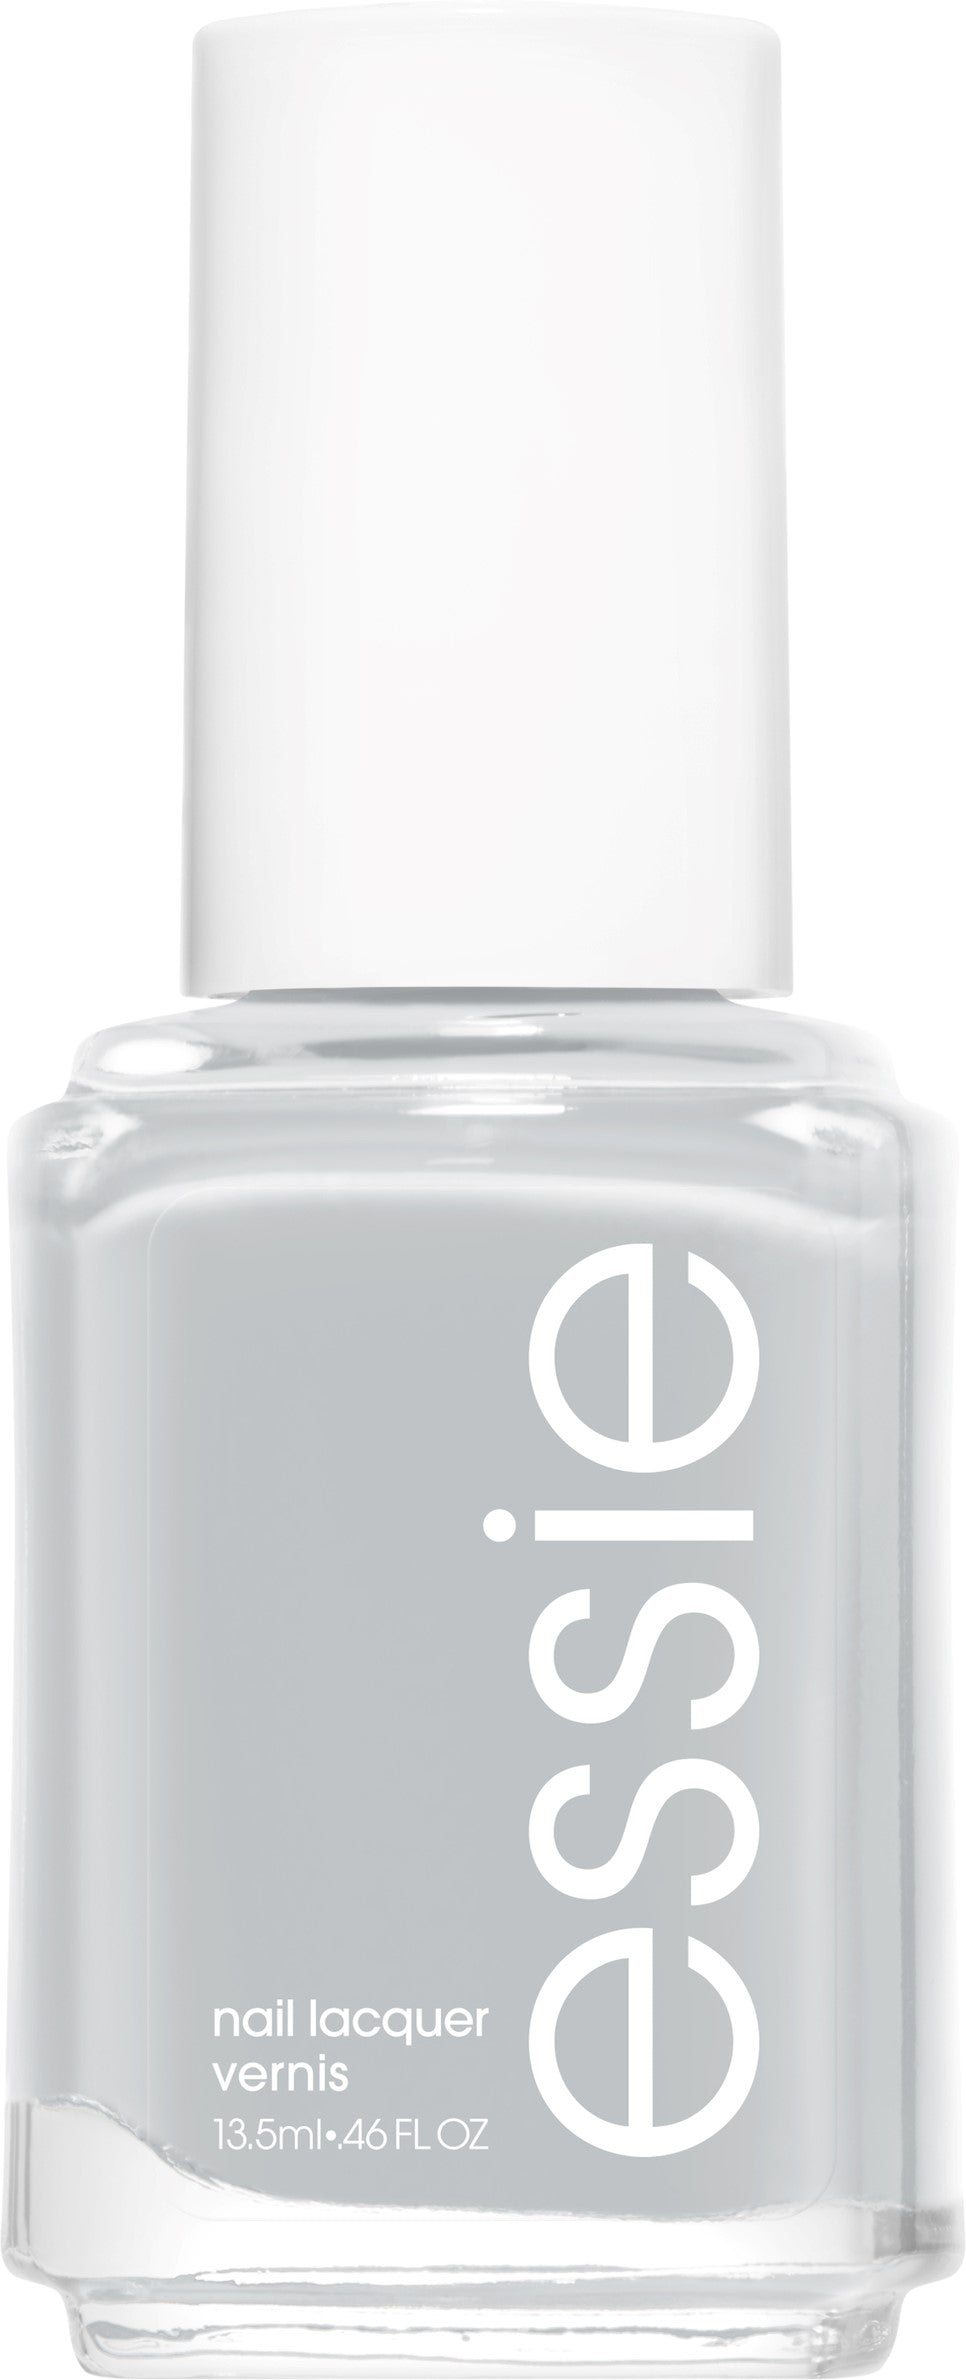 essie serene slate nail polish collection, press pause, 0.46 oz